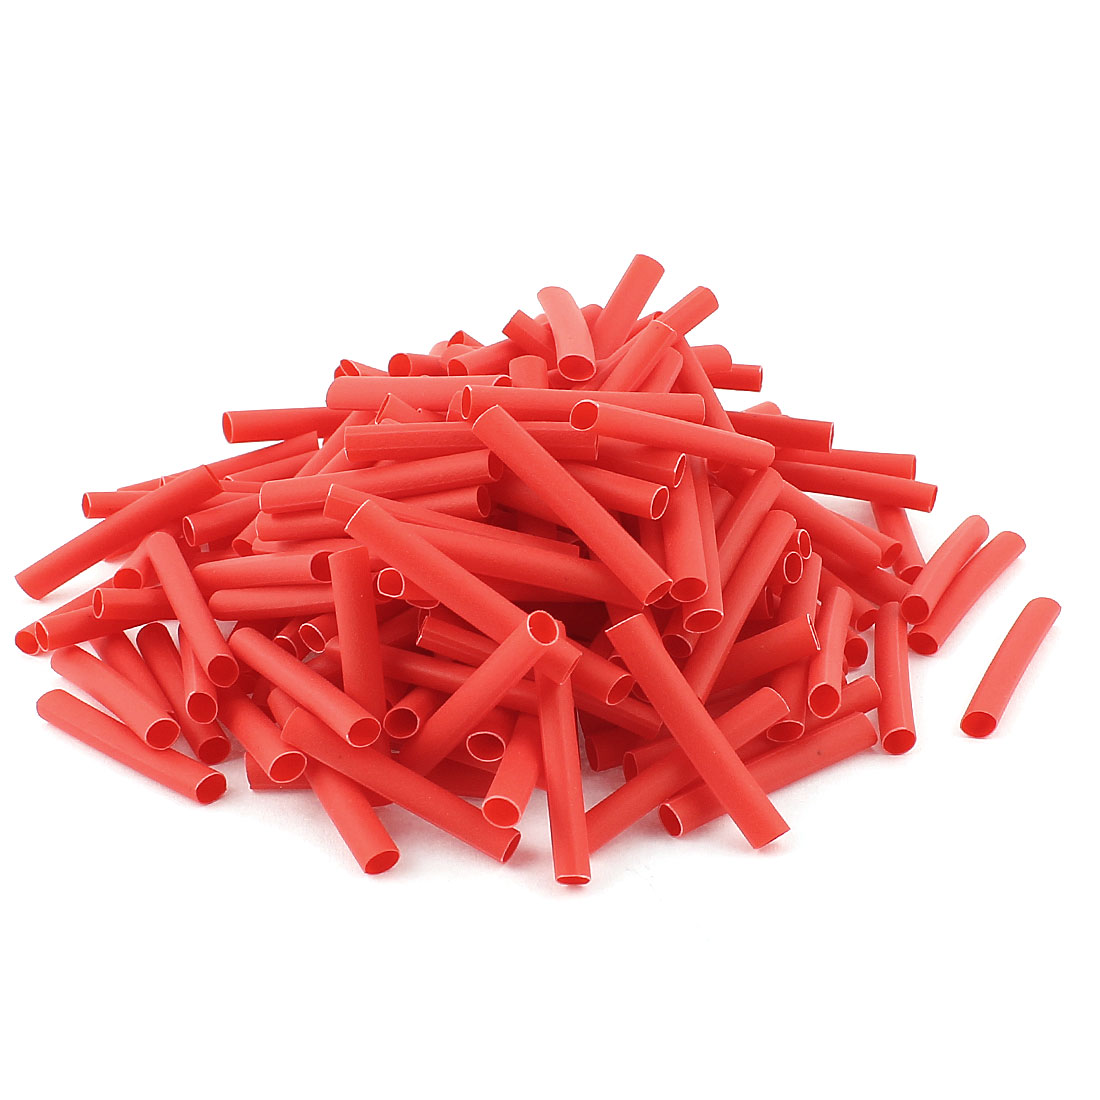 Red 3mm Dia 2:1 Polyolefin Heat Shrink Tubing Shrinkable Tube 30mm 200pcs